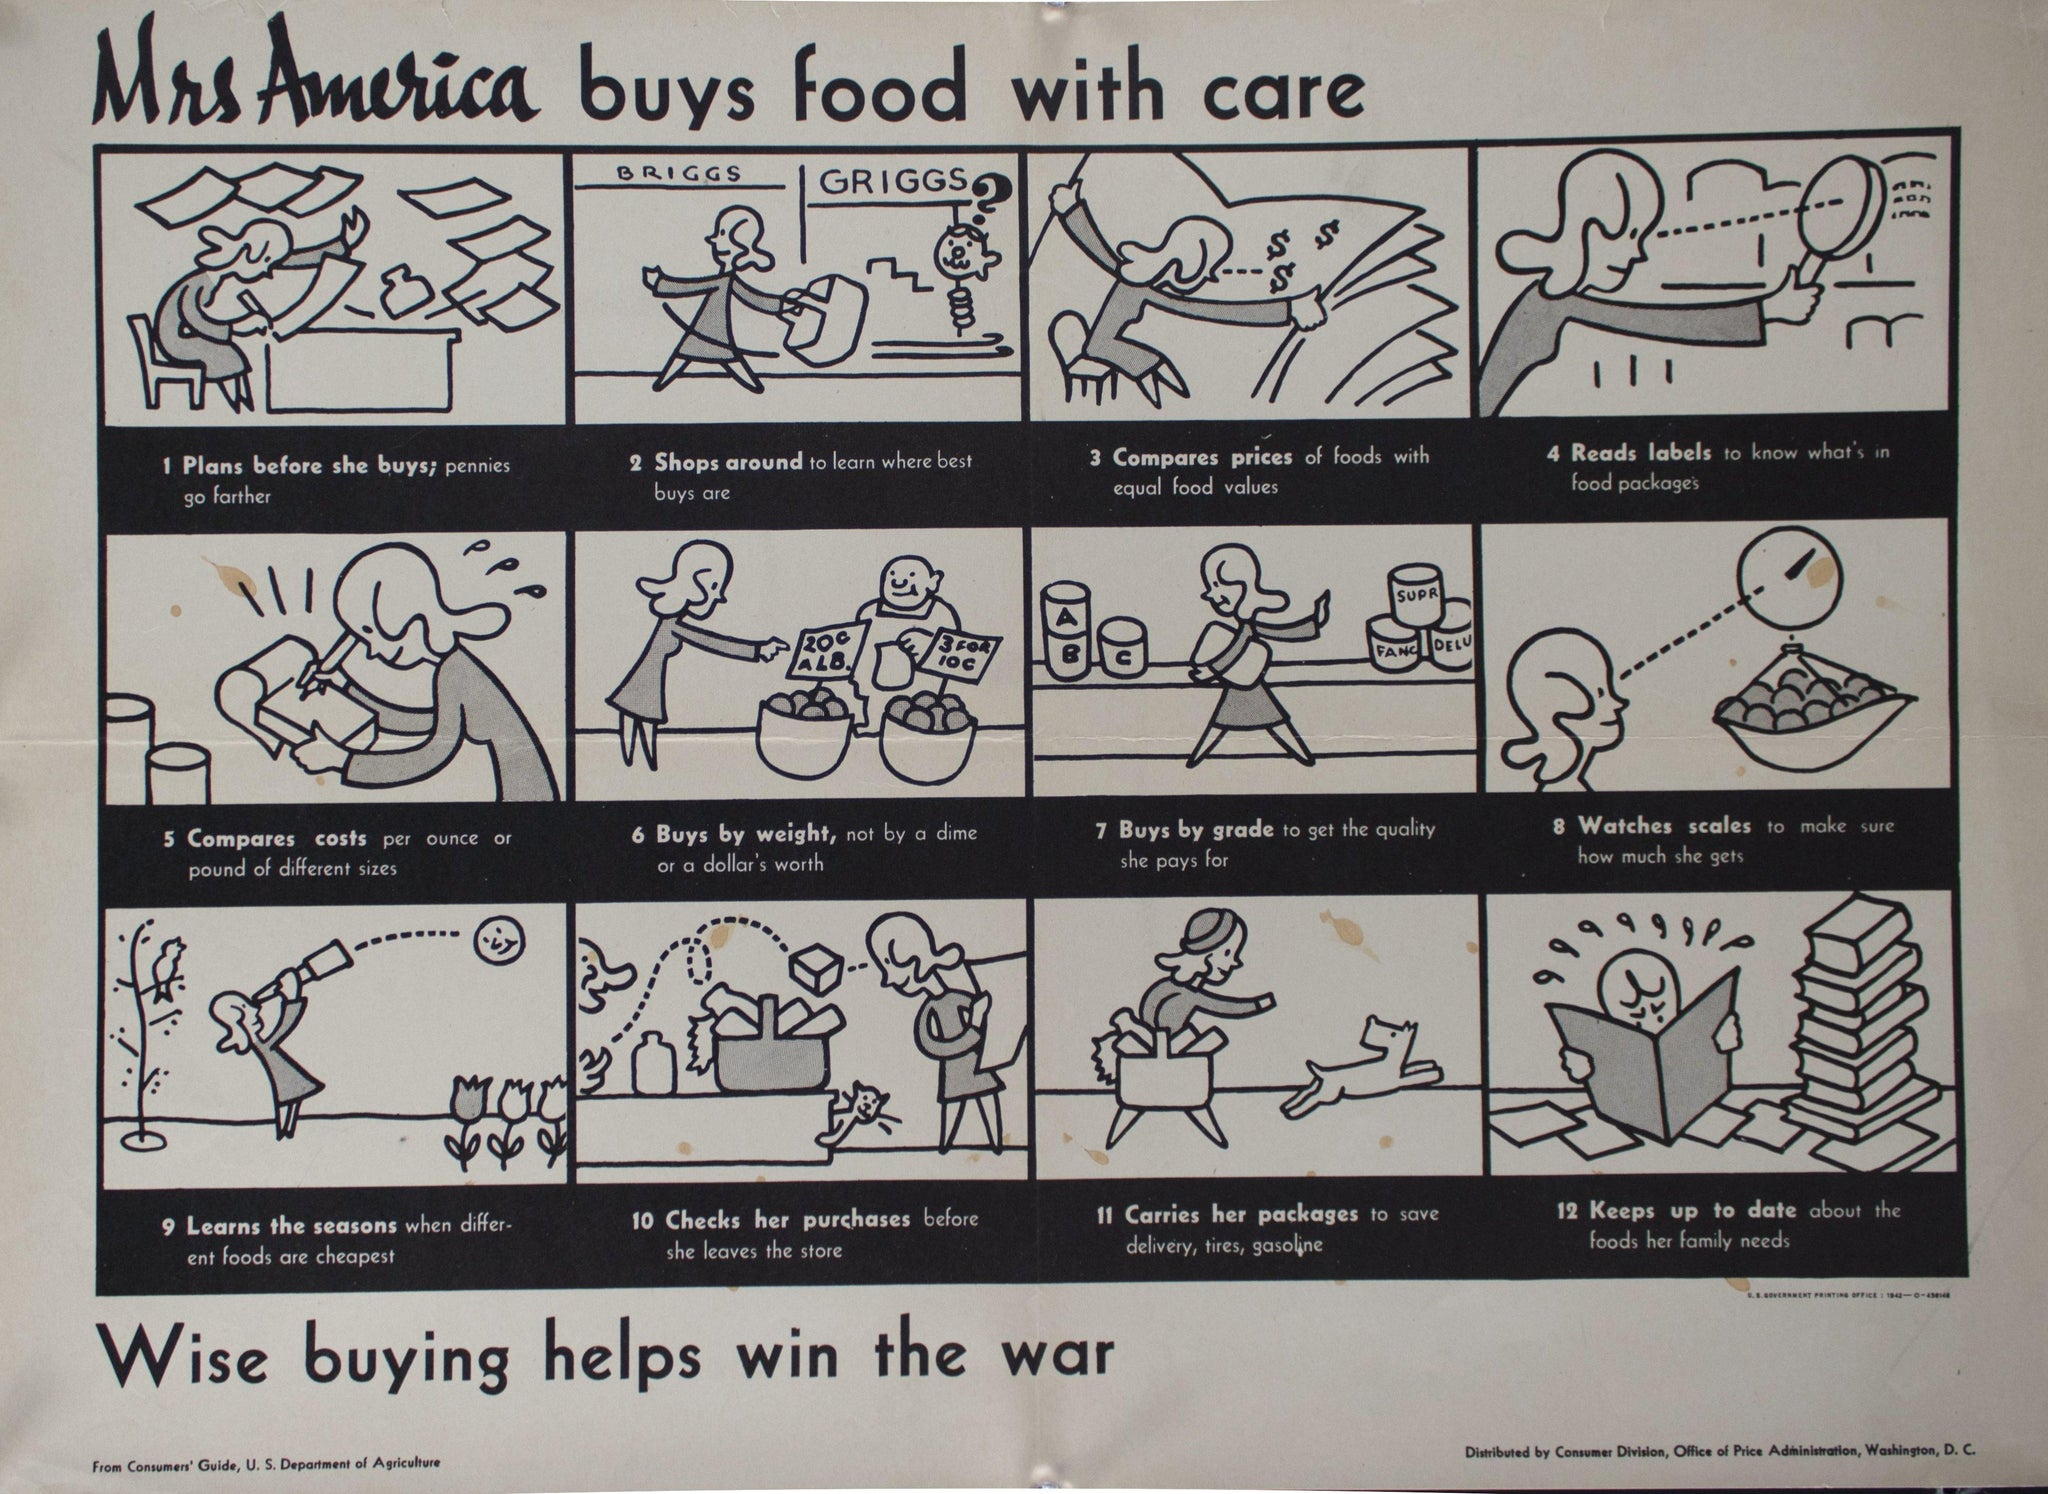 1942 Mrs America Buys Food With Care - Wise Buying Helps Win the War